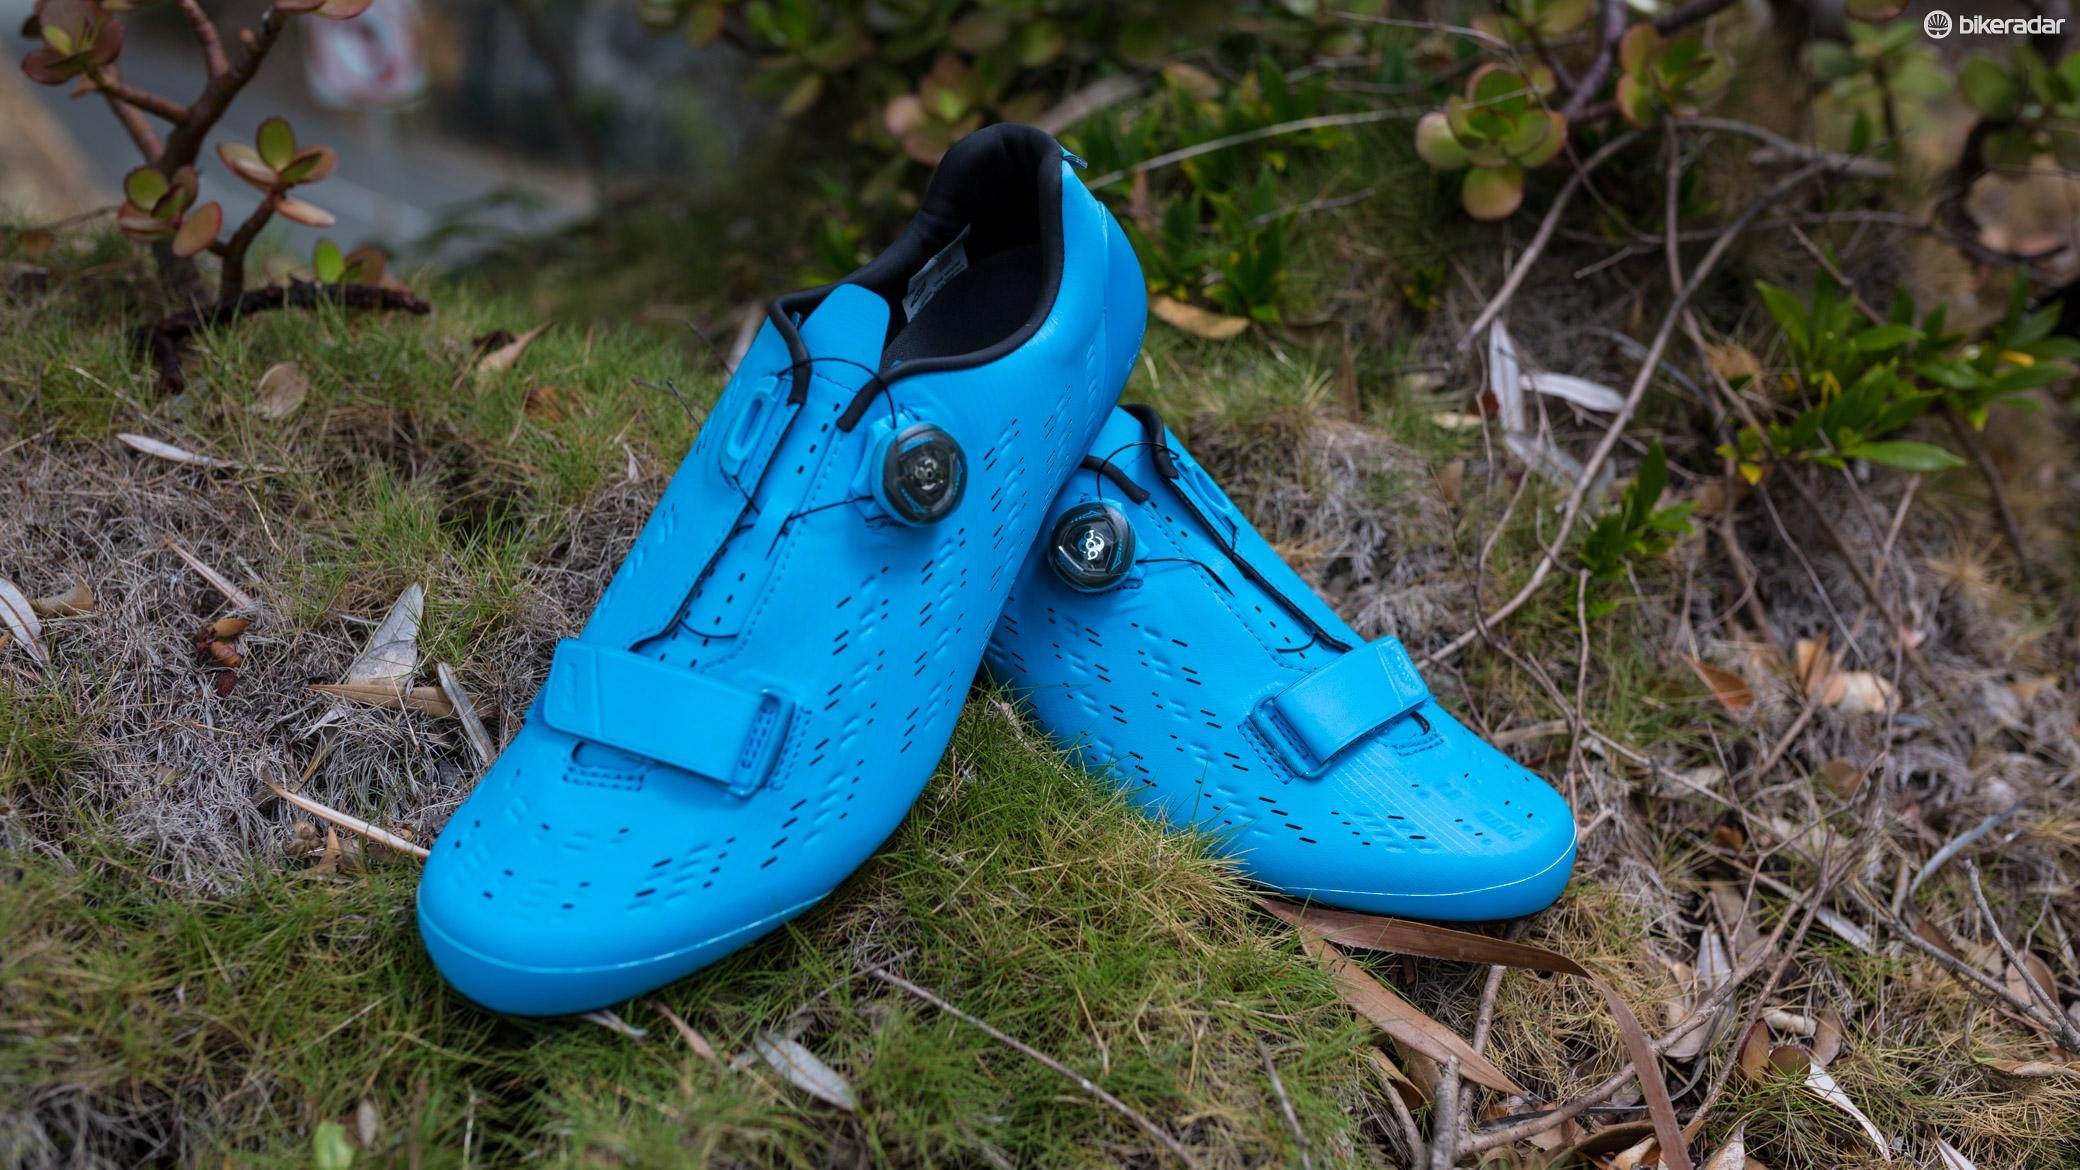 Shimano's new RP9 is the brand's lightest shoe to date